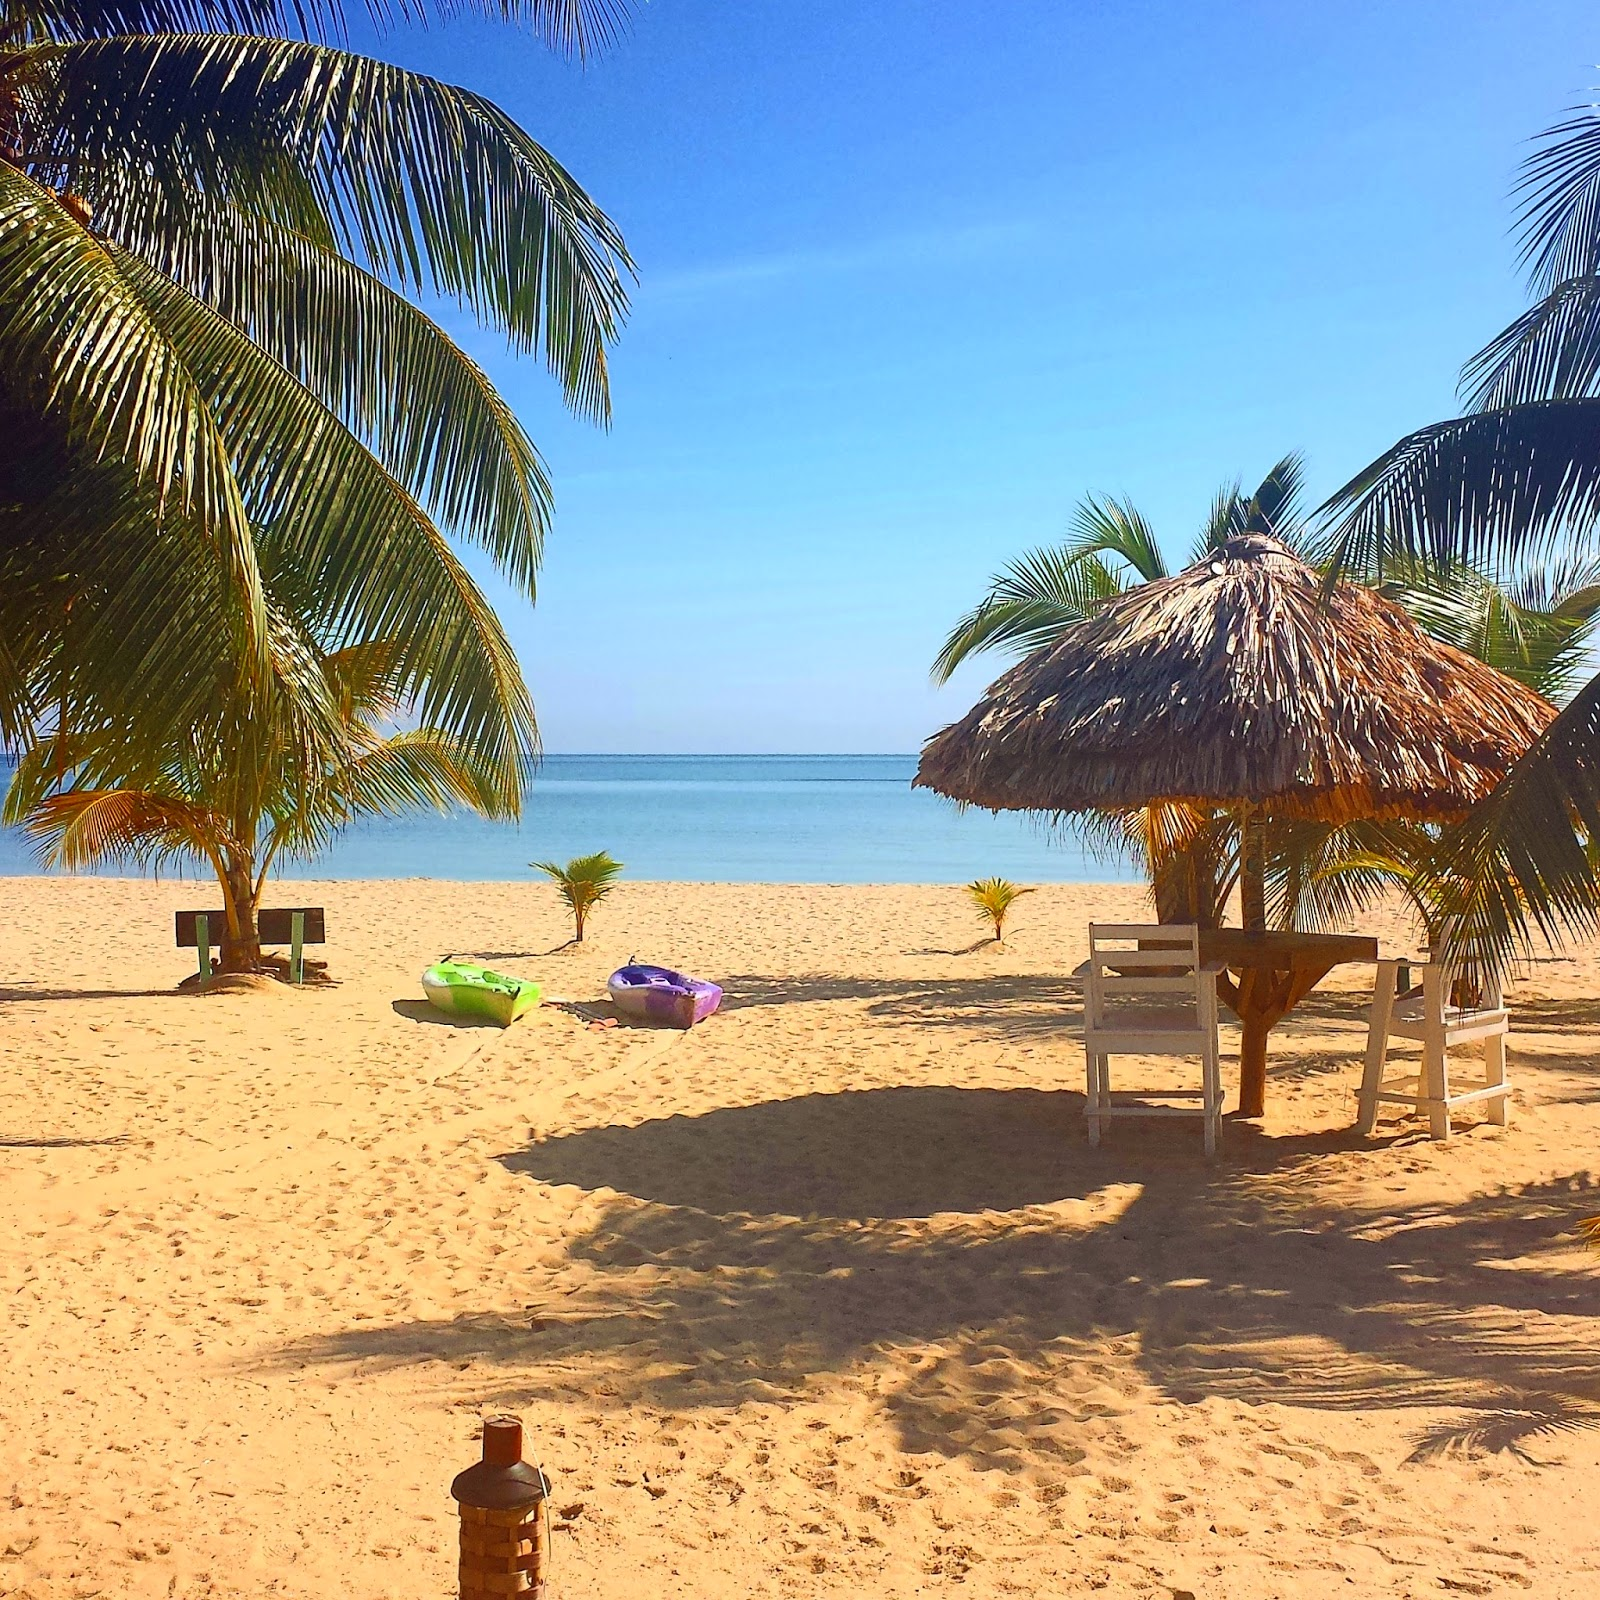 Belize Beaches: Reviews Of Fusion, Tranquilo, Lost Reef Resort, And The